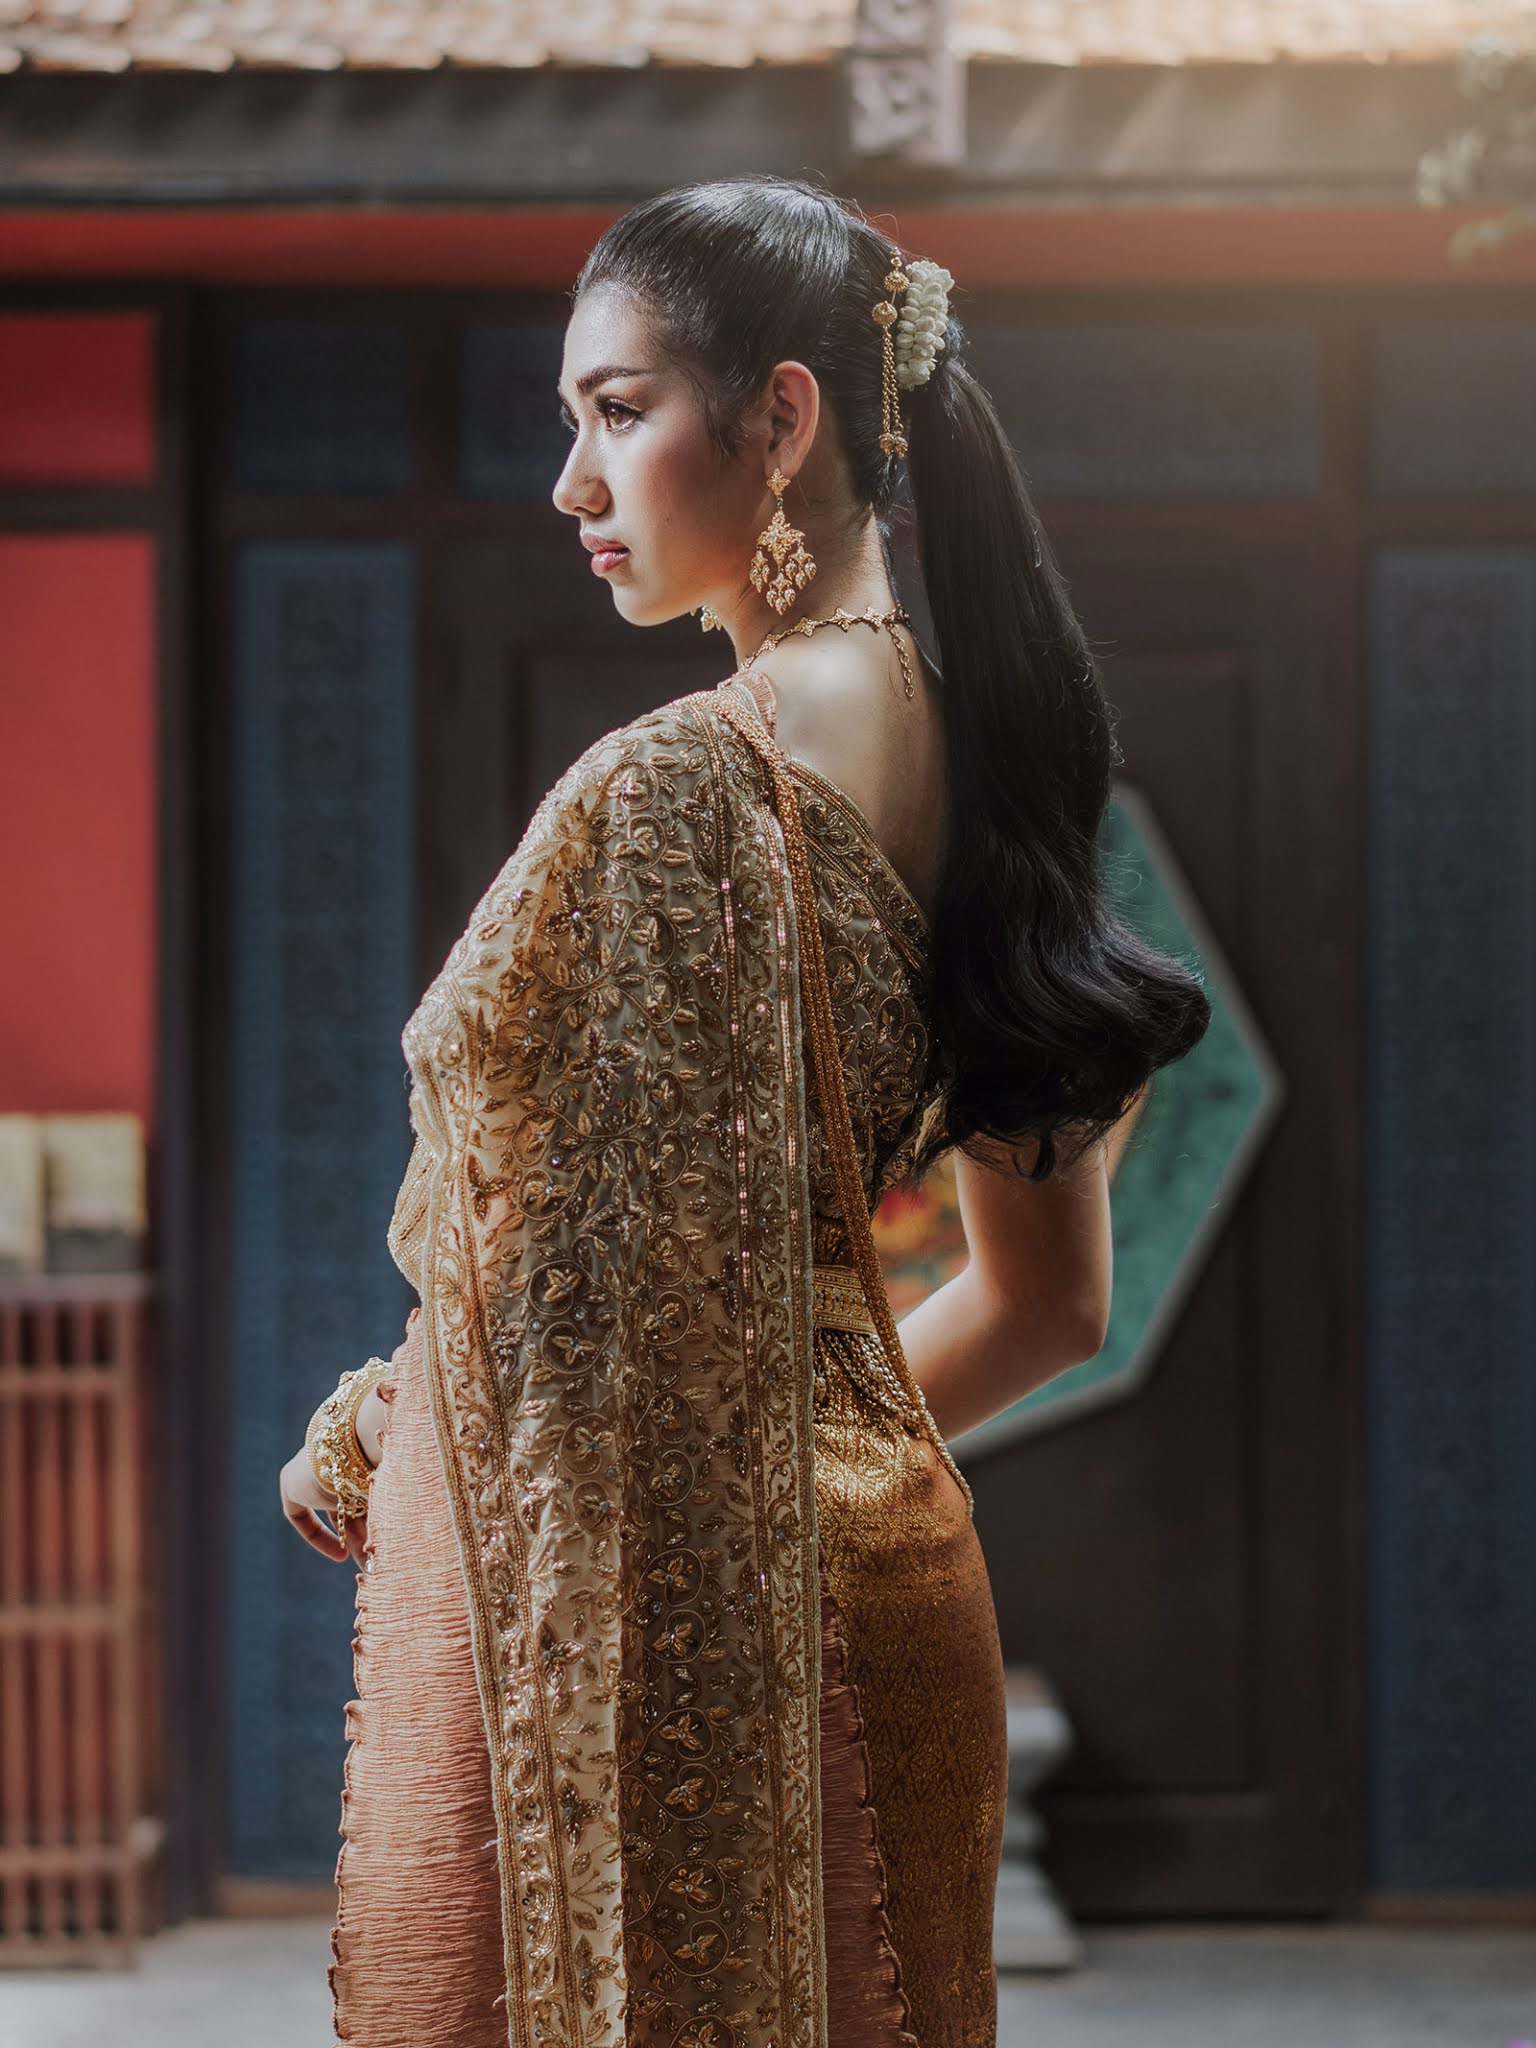 Khmer Bride costume